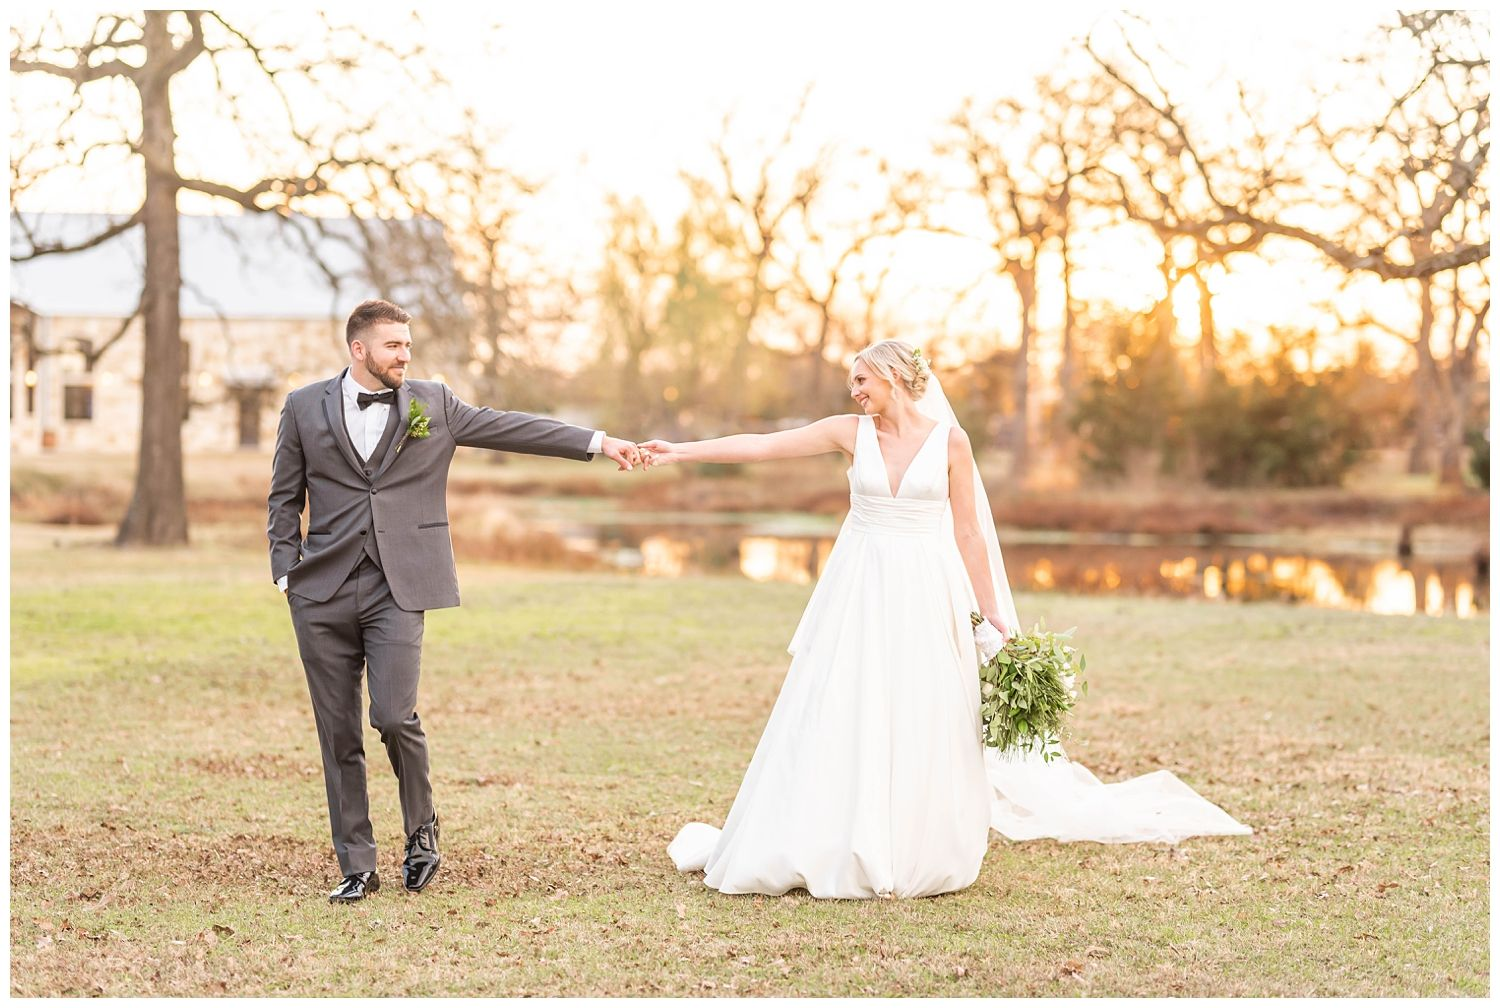 Favorite shared from kayleigh kyles wedding at the